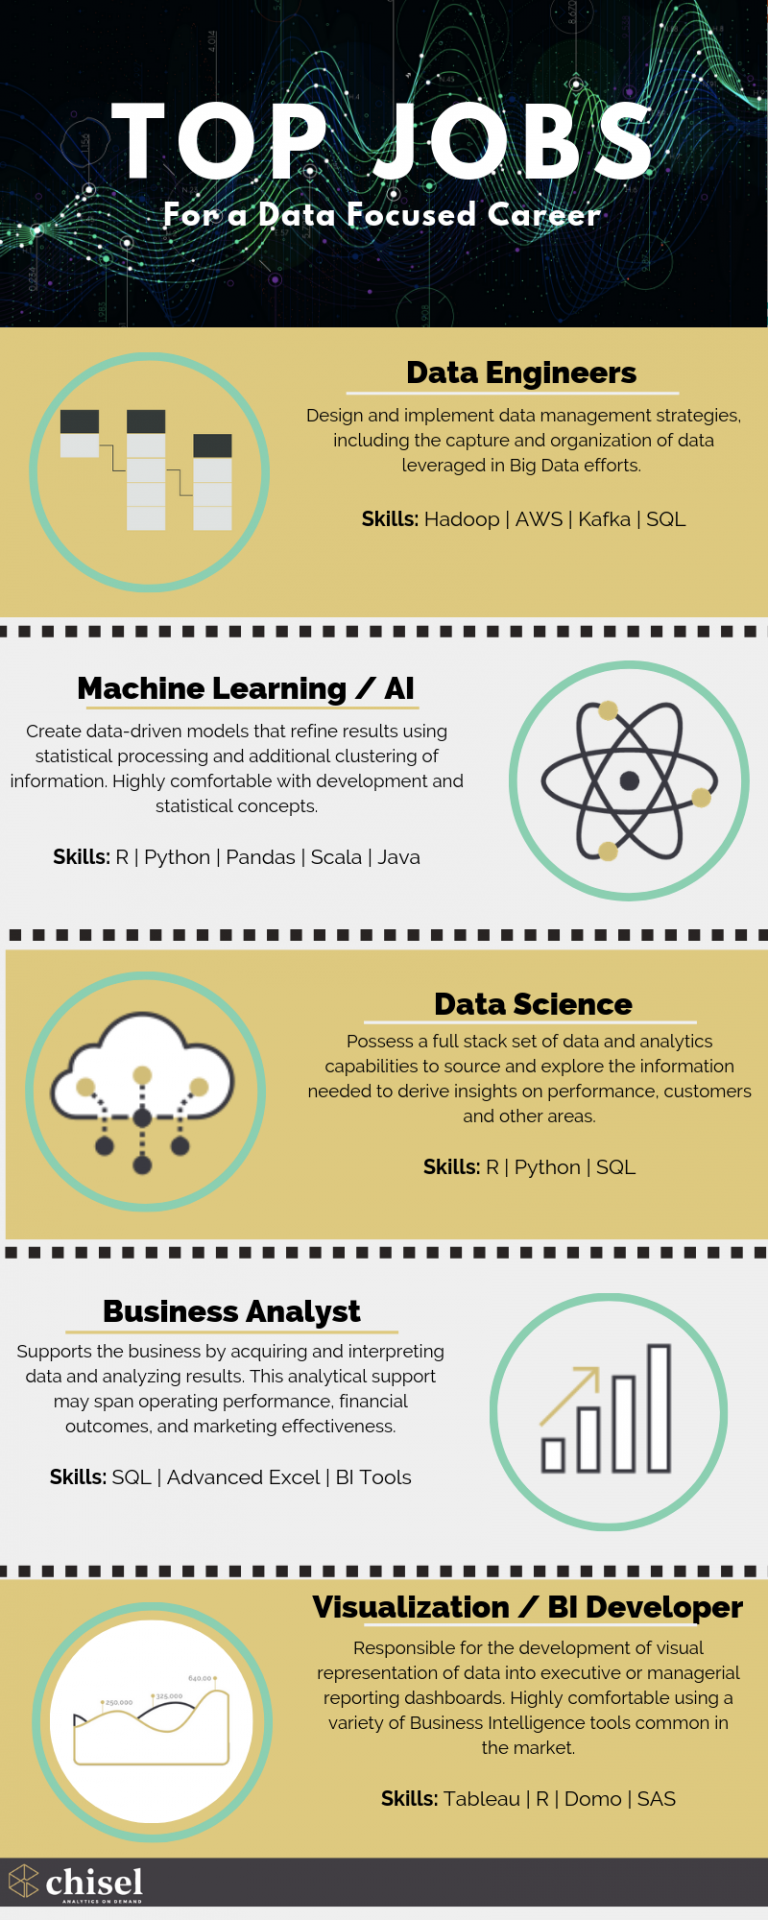 Top Jobs for a Data Focused Career